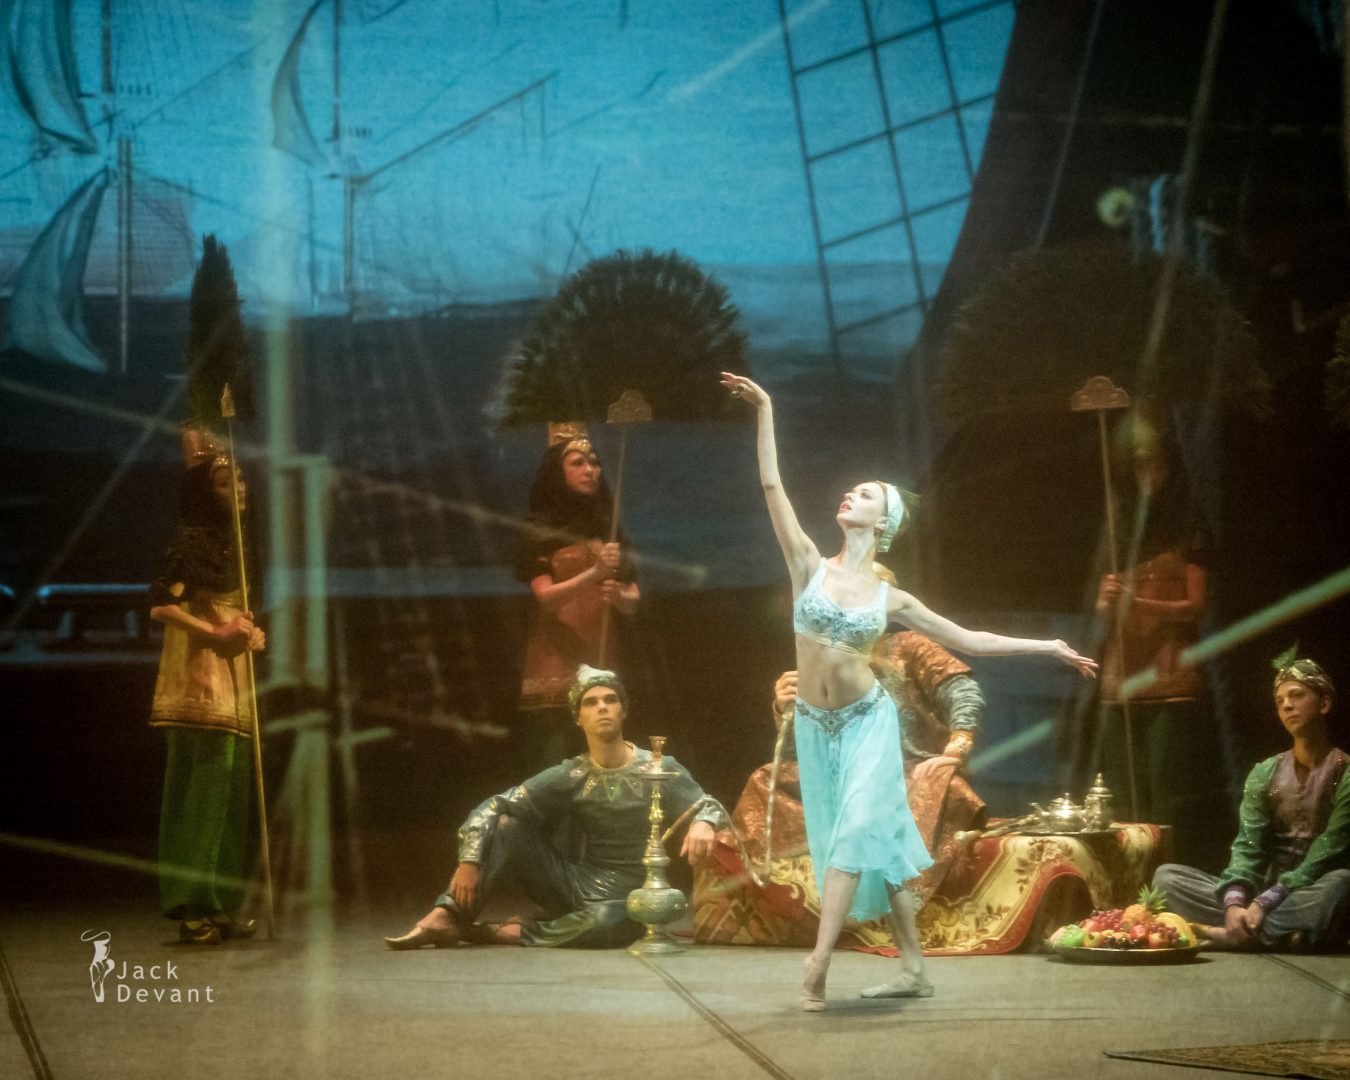 Anna Sharovieva (Анна Шаровьева) in the Oriental Dance Mikhailovsky Theatre 2